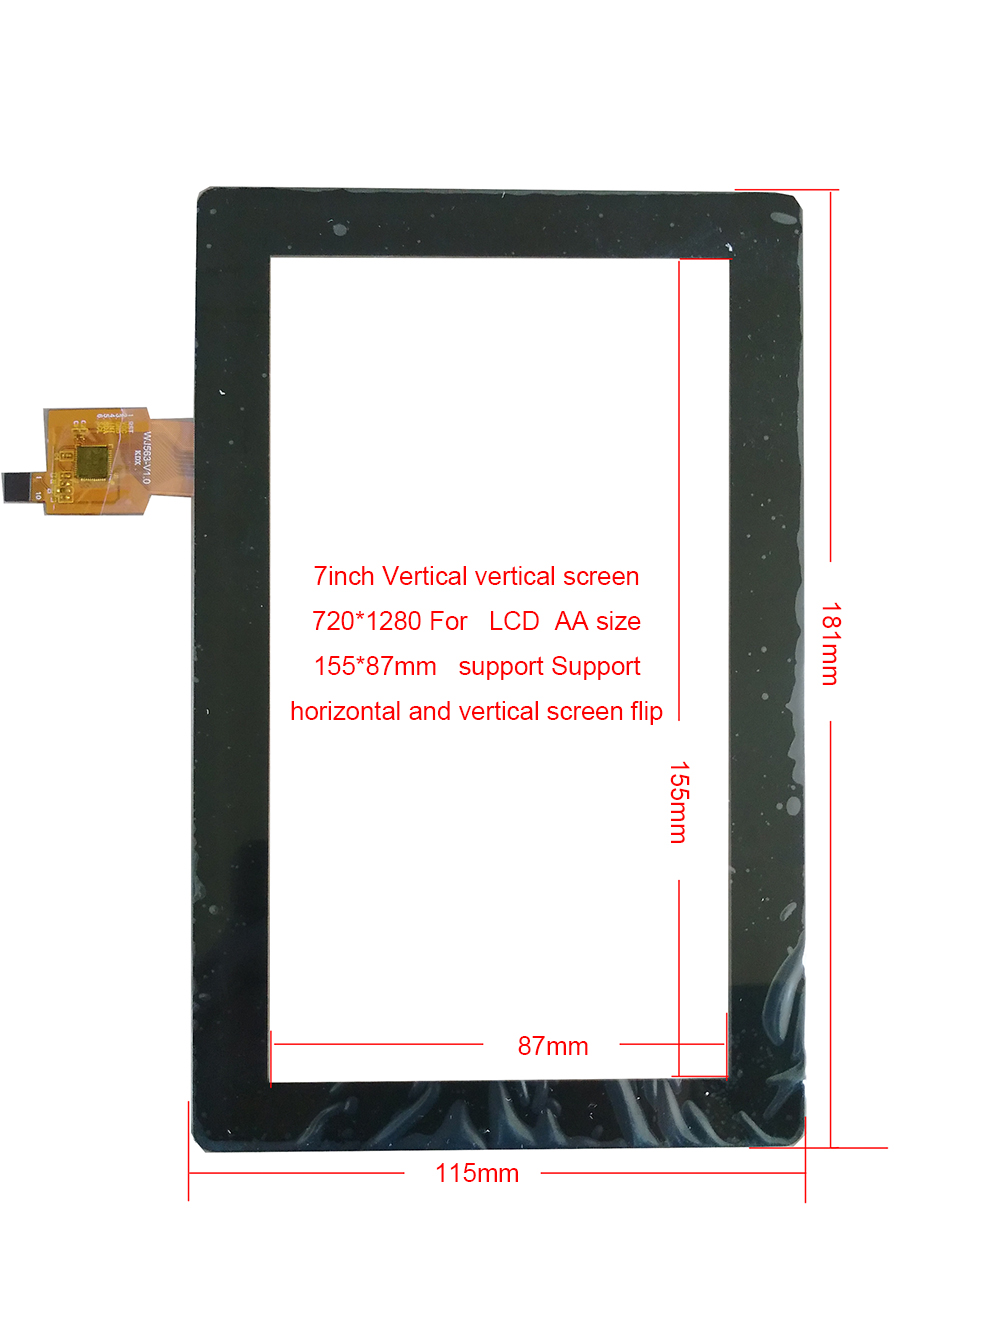 7inch USB Touch Screen For  720*1280 LCD Support Horizontal And Vertical Screen Adjustment Raspberry windows10